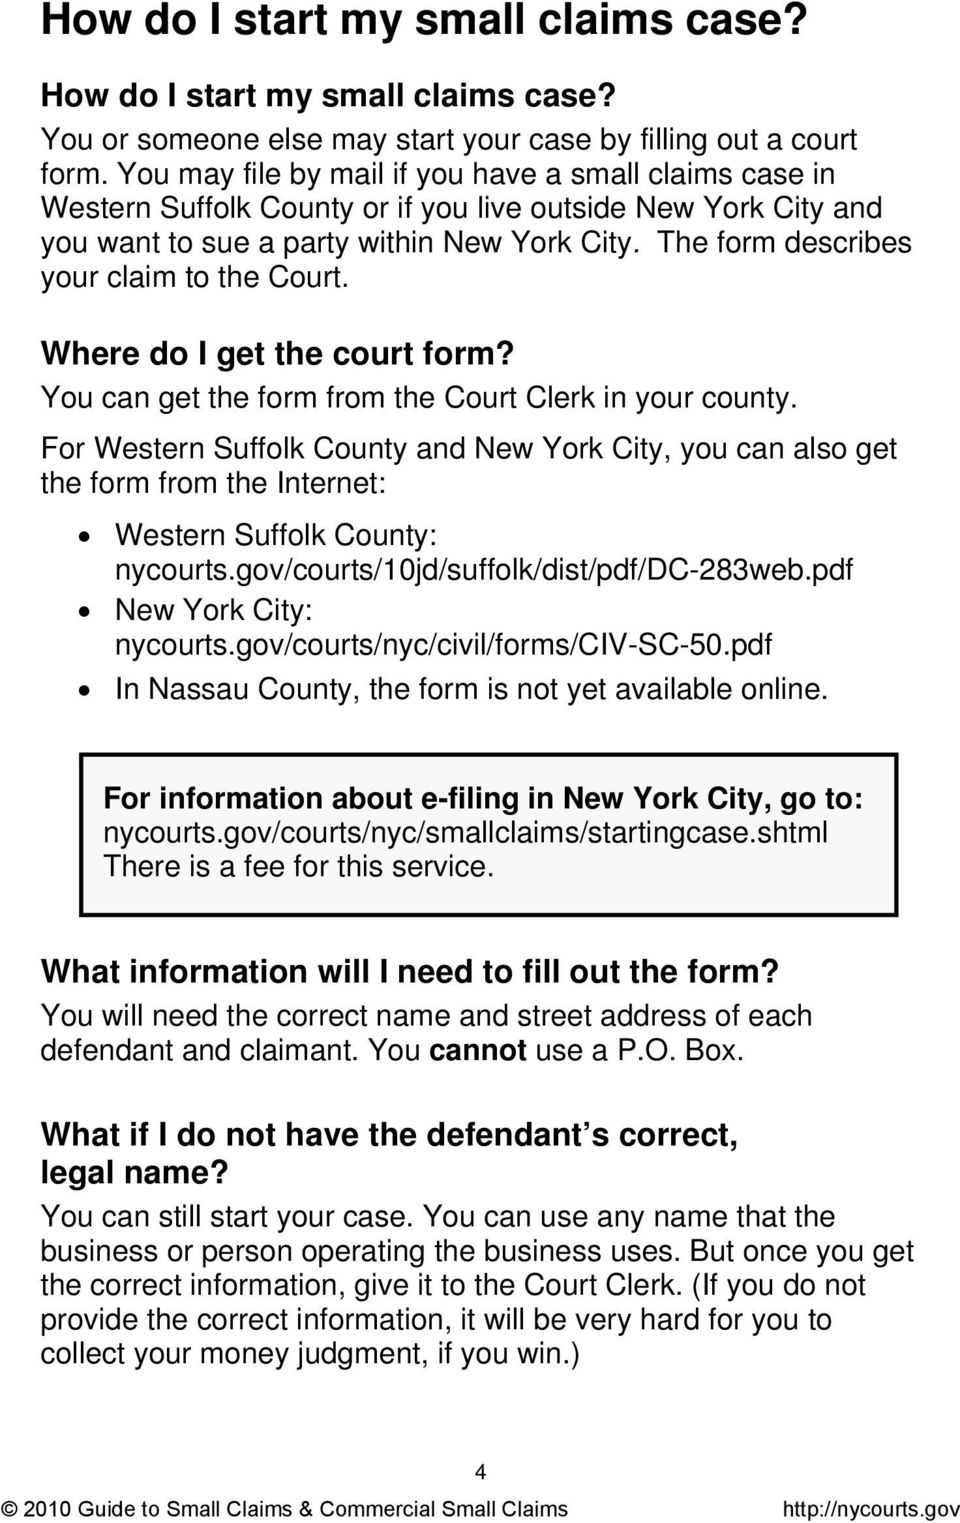 The form describes your claim to the Court. Where do I get the court form? You can get the form from the Court Clerk in your county.